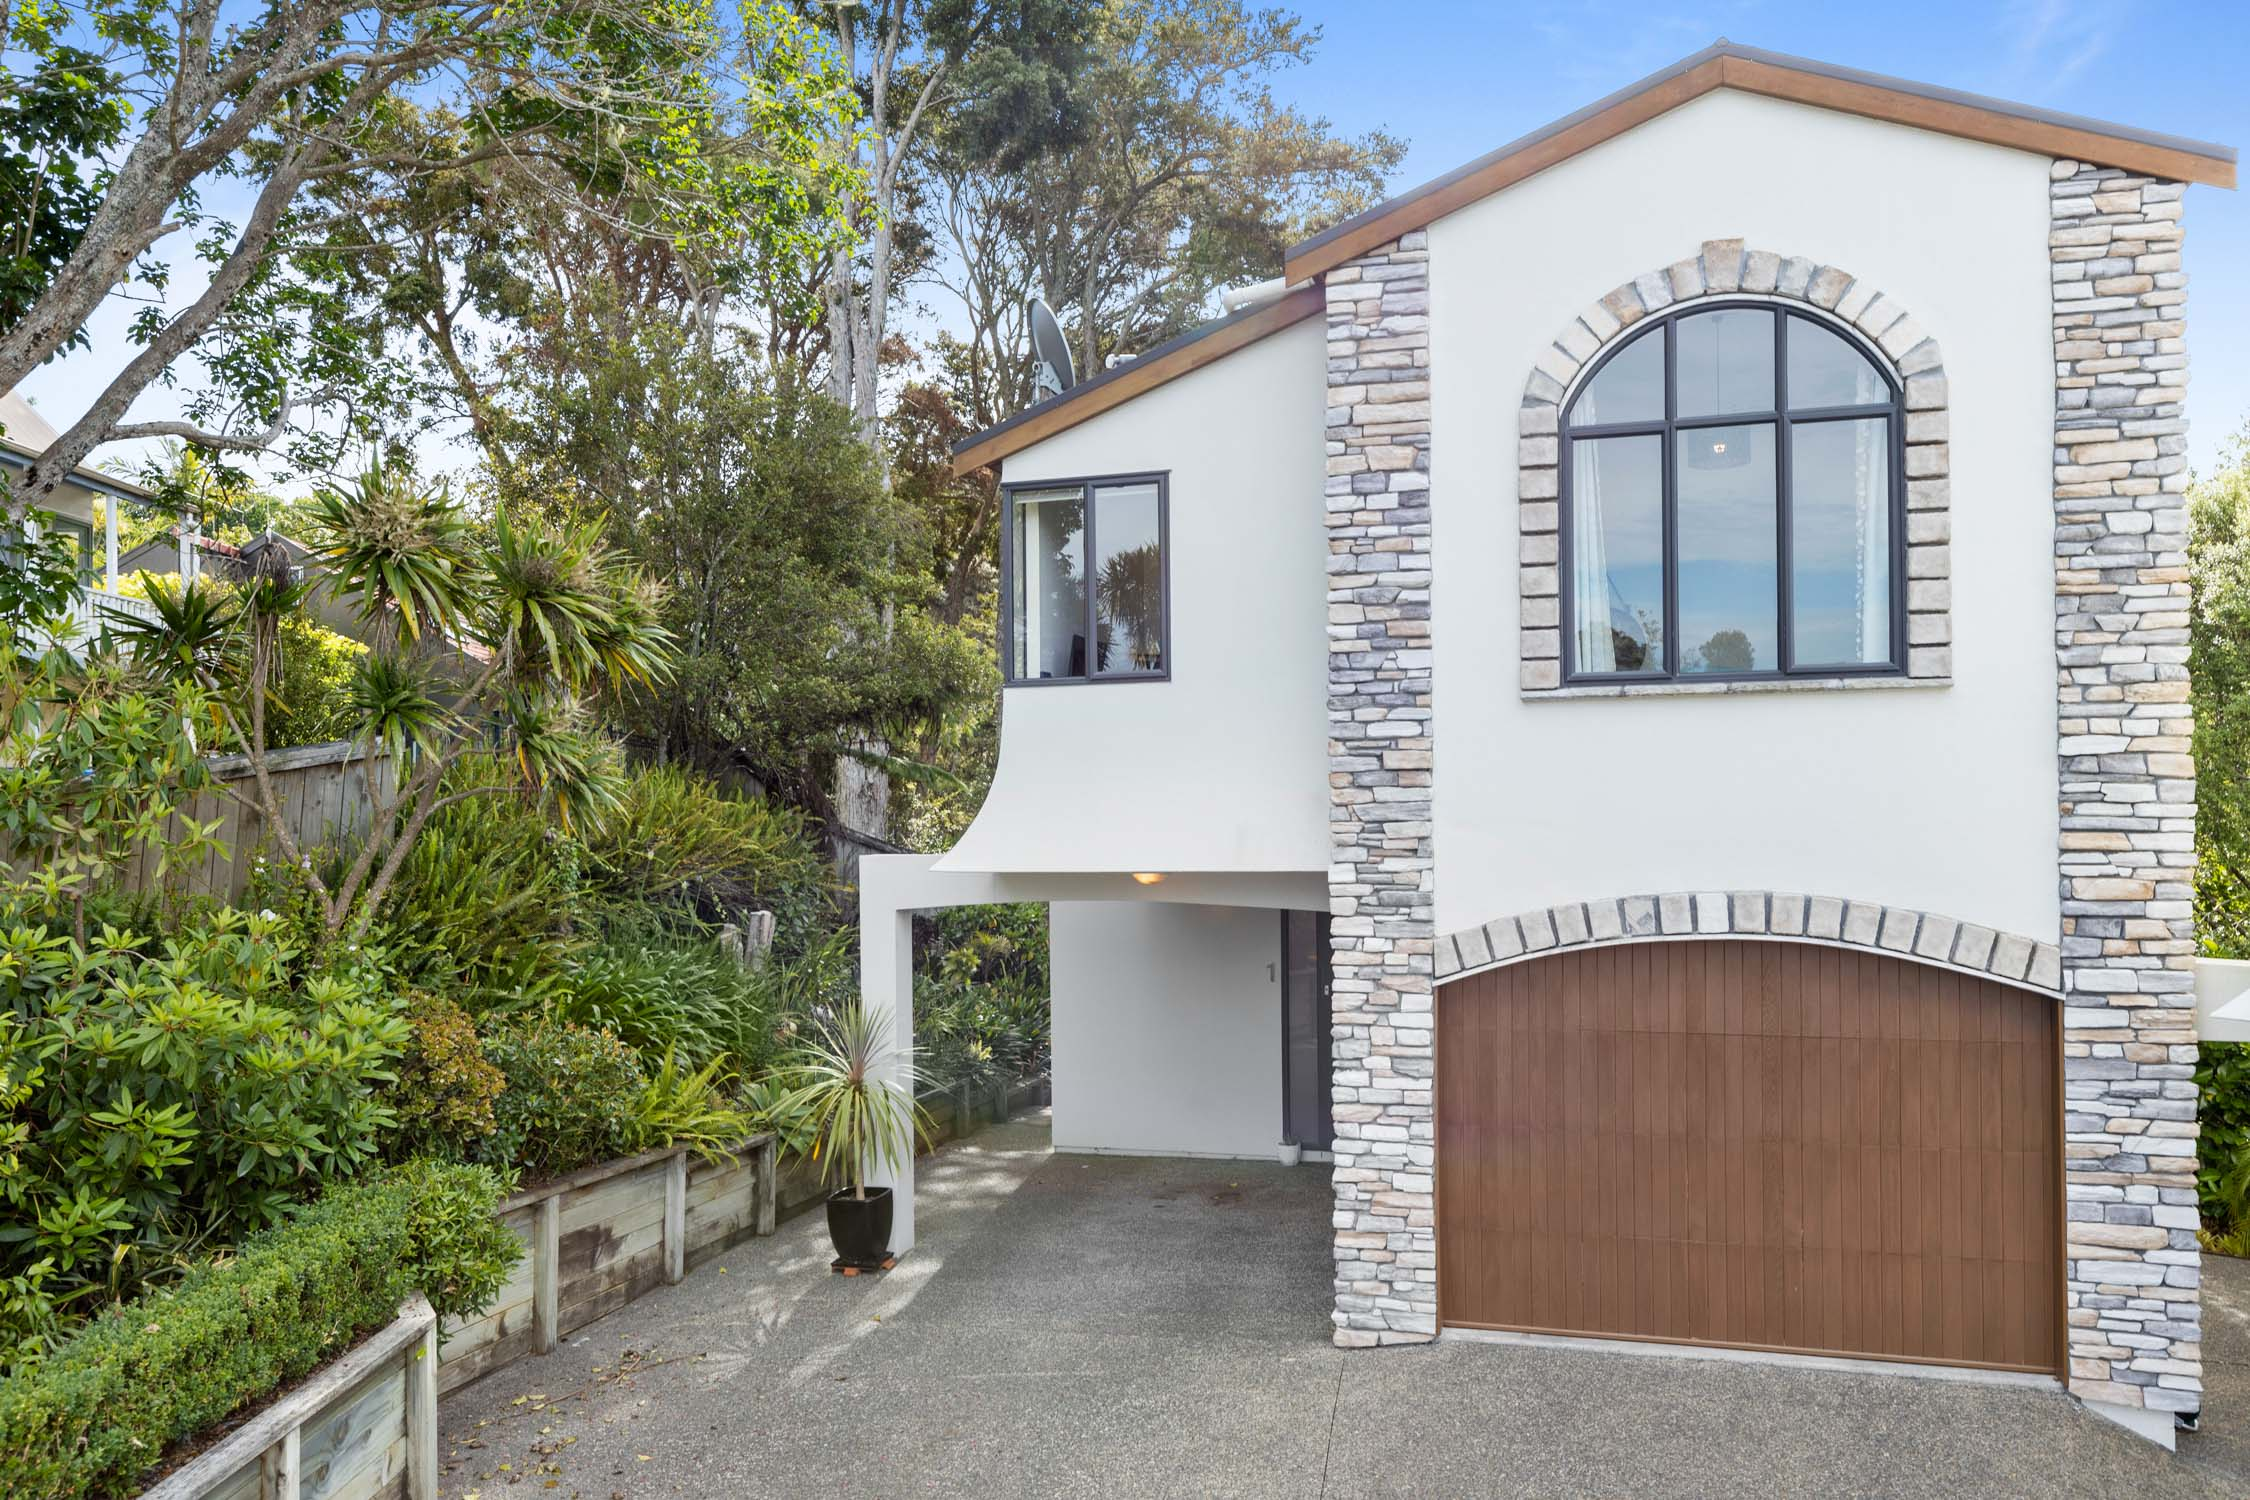 49074Open home times